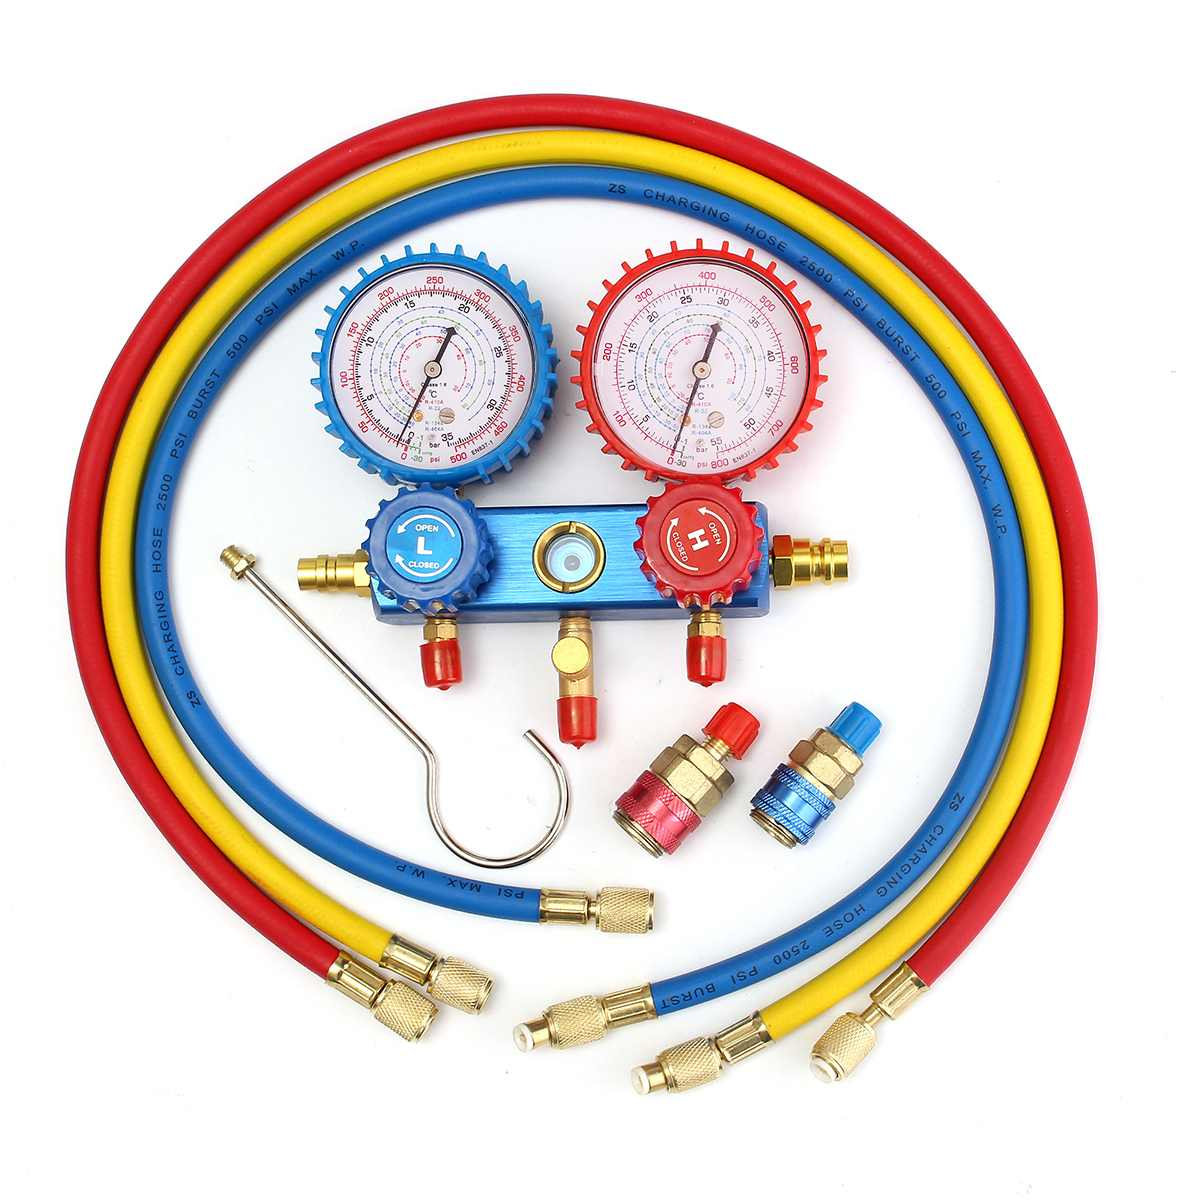 Manifold Gauge Set A/C R134A with 2 Quick Coupler Cable Set for R134A Air conditioning Refrigeration Auto Manifold Gauge